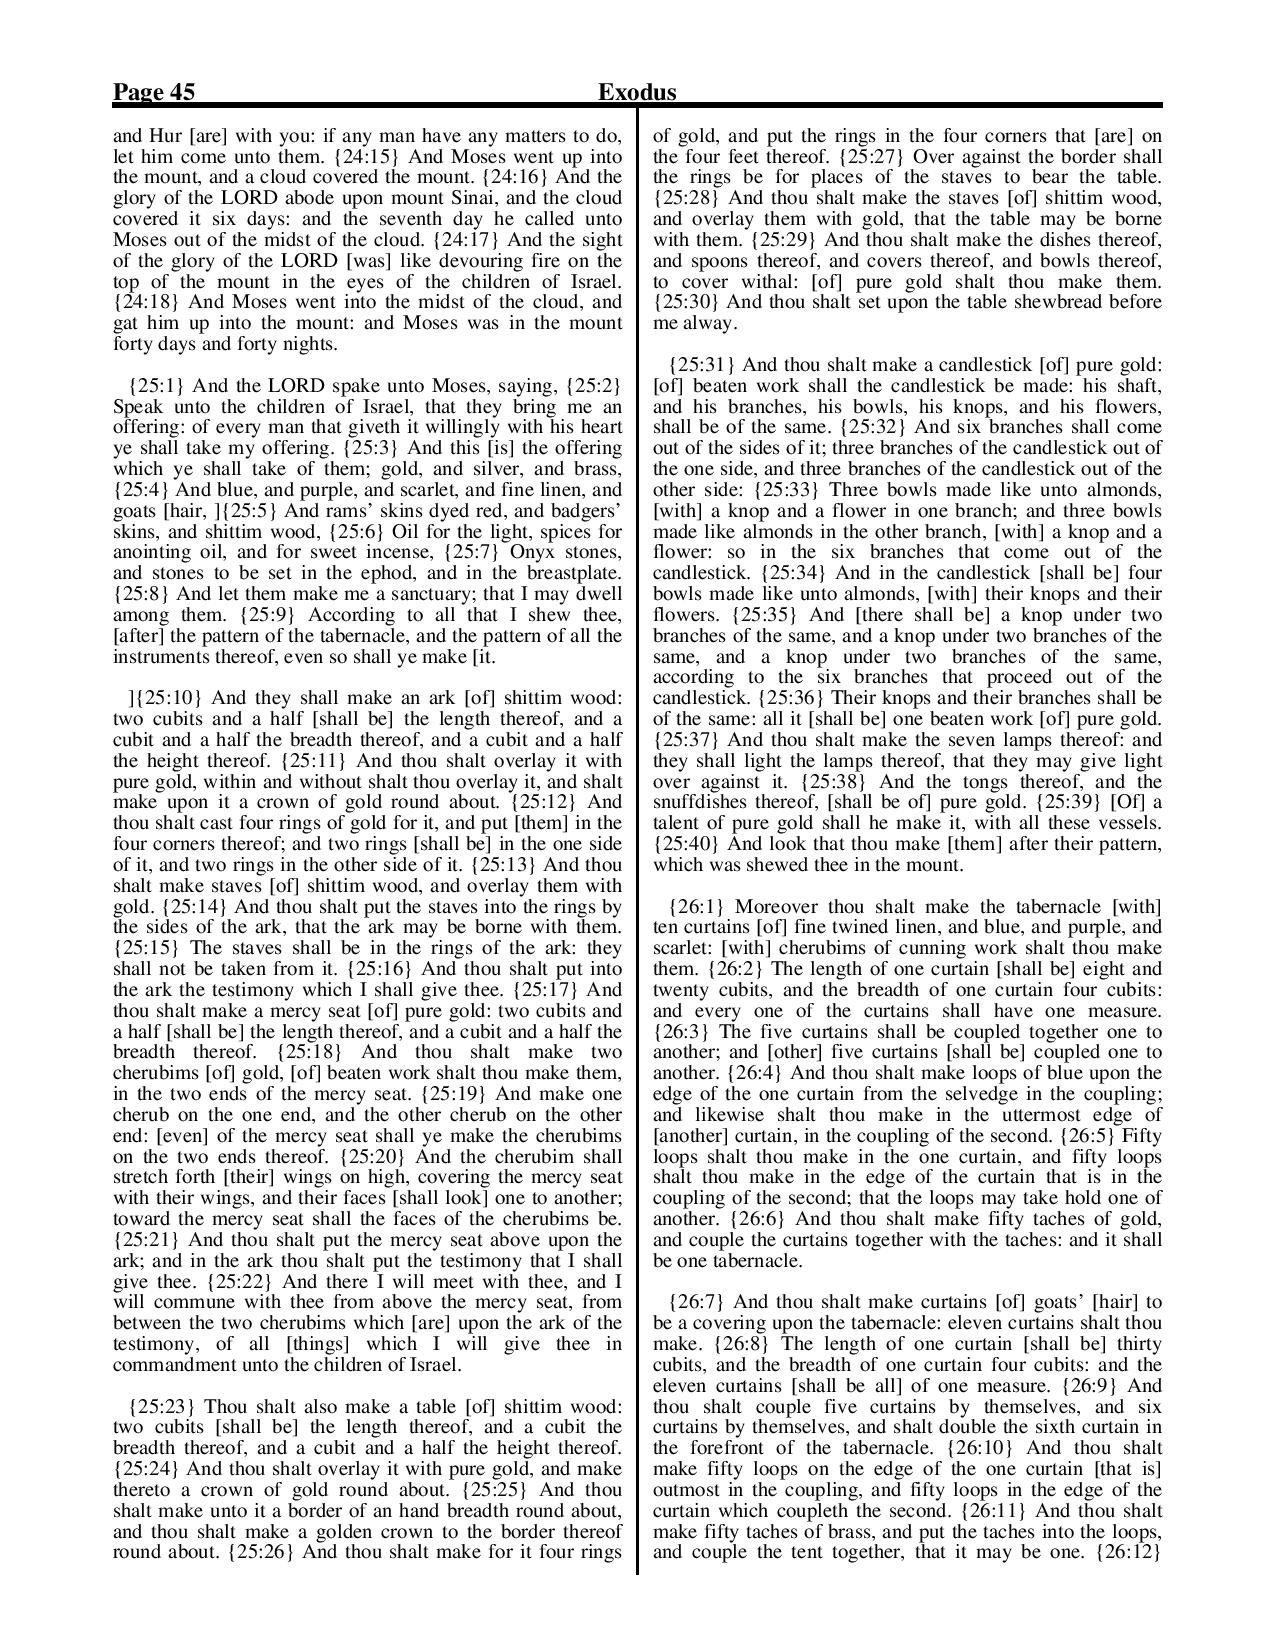 King-James-Bible-KJV-Bible-PDF-page-066